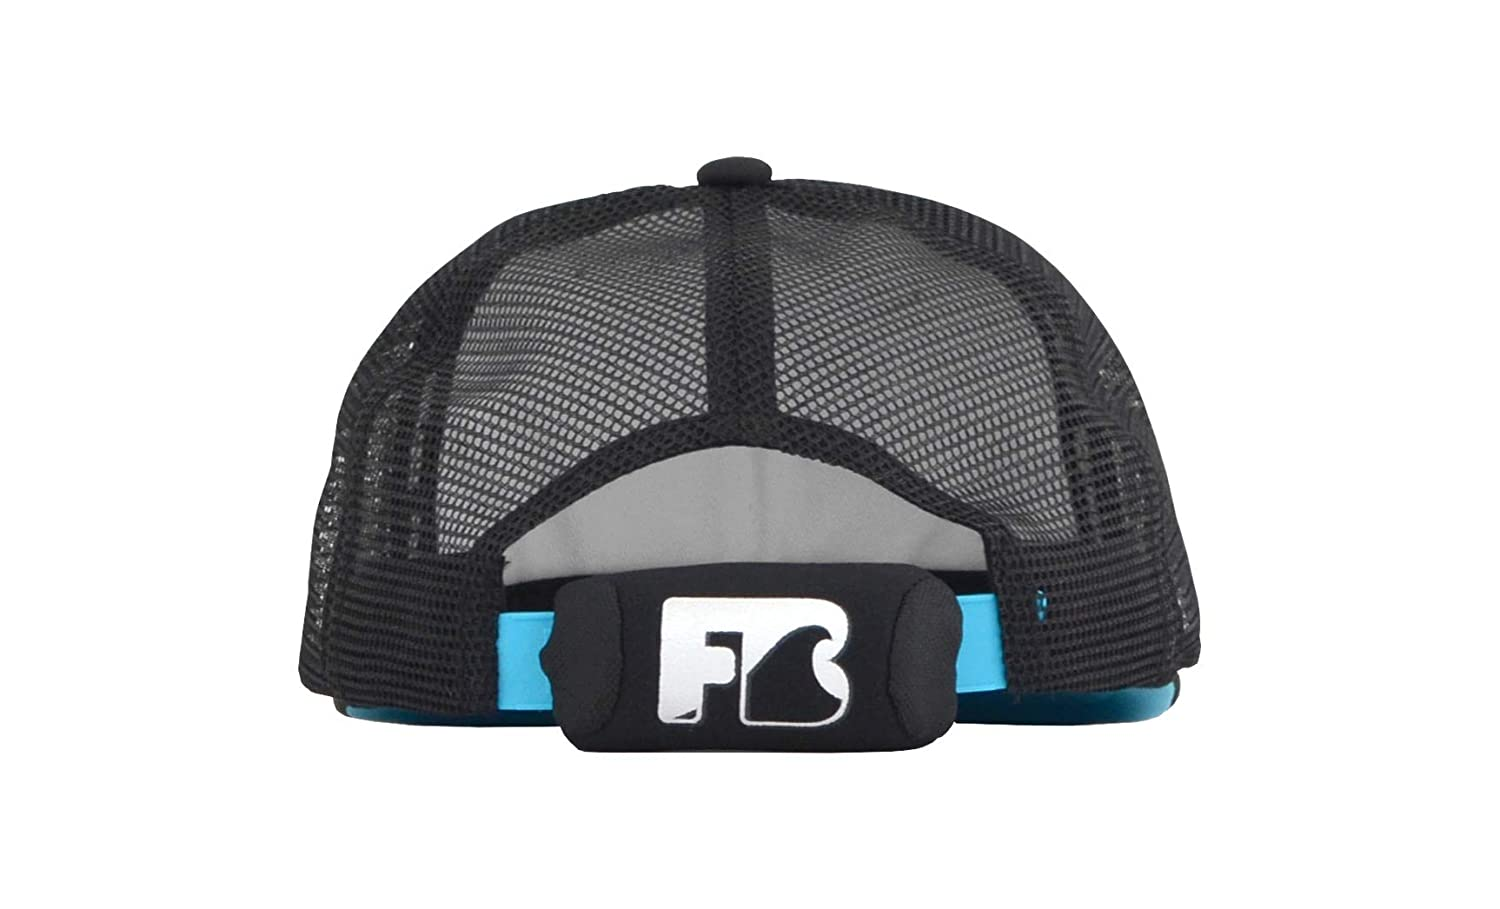 c03a1a256c9 Amazon.com : Floatback: Attachable Hat Float [Black] Make Any hat  Unsinkable. Stash Pocket for Keys and Cash [Easy Connect Float to Hat] :  Sports & Outdoors